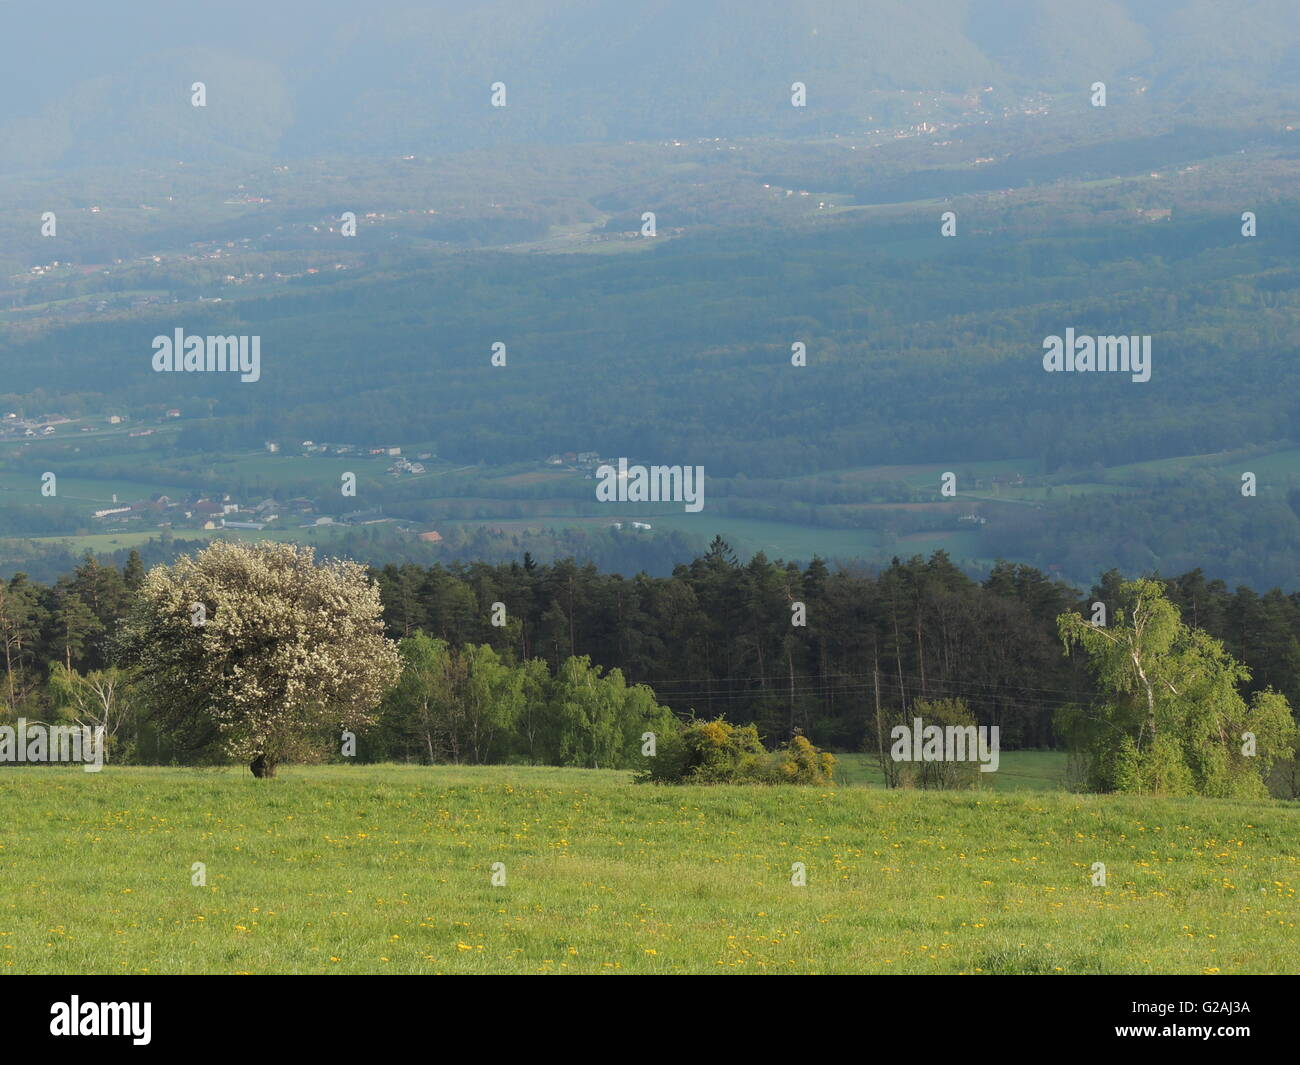 outlook near Slovenska Bistrica, Slovenia - Stock Image